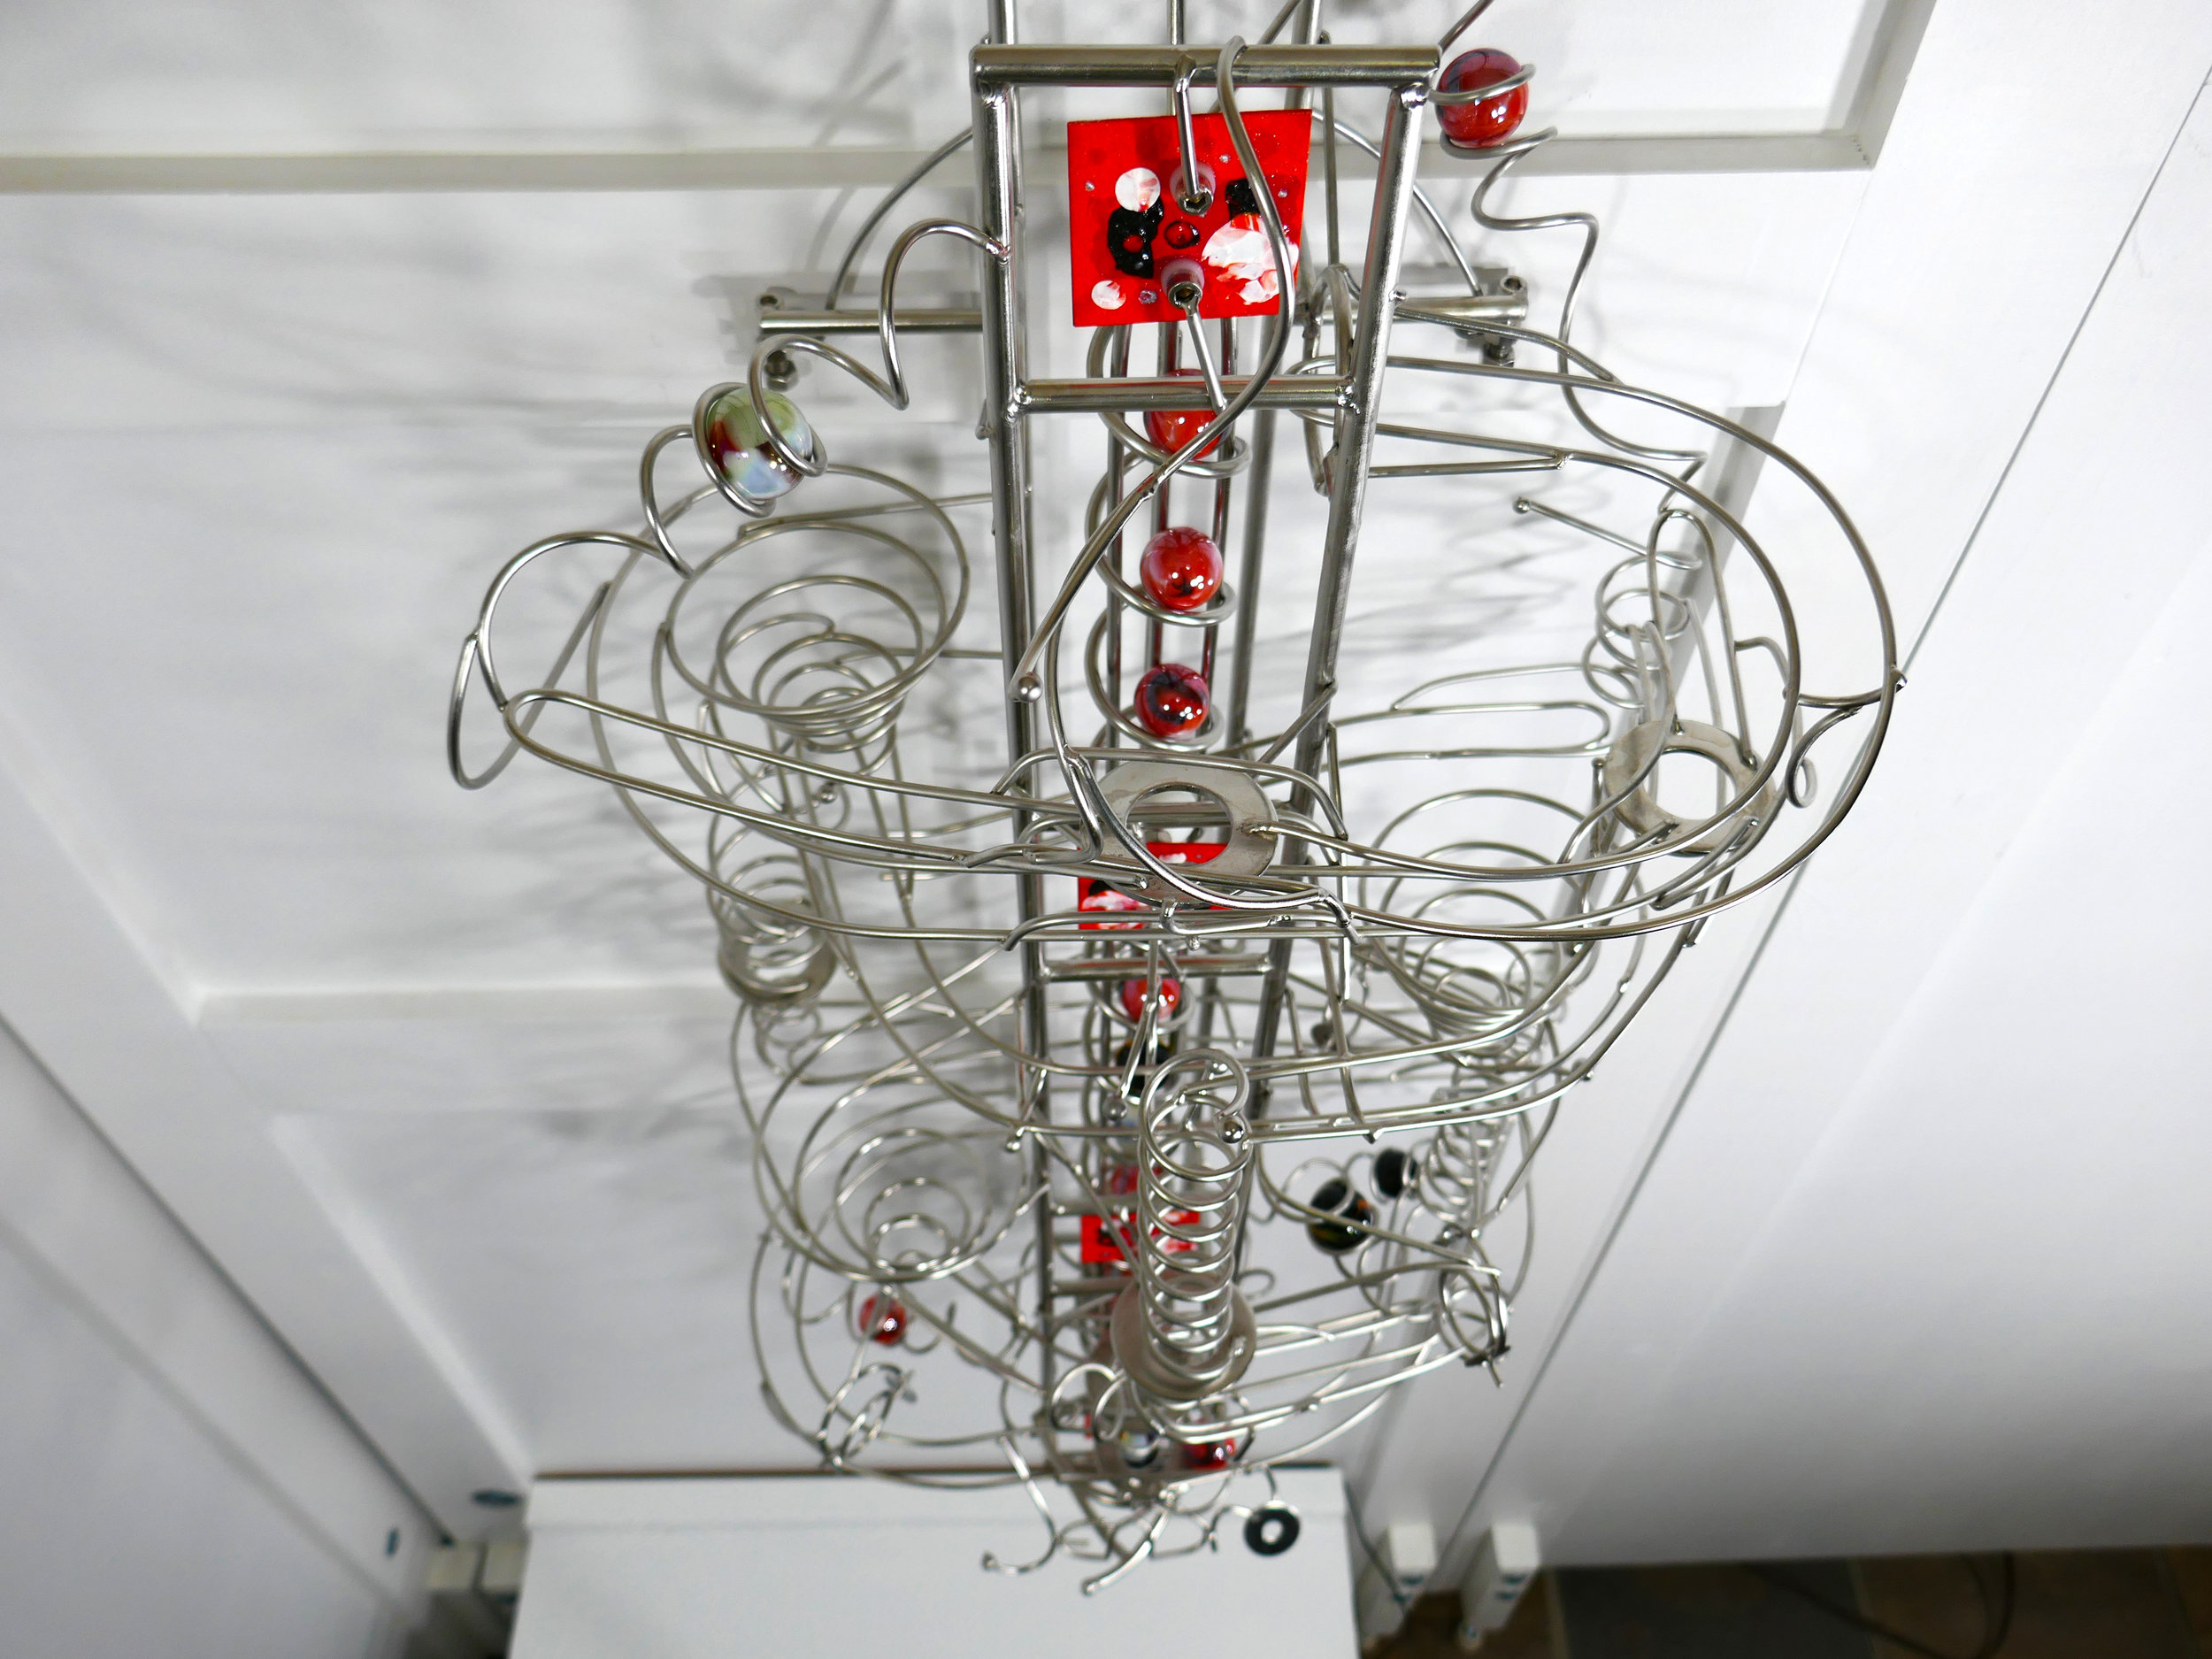 Marble run sculpture - kinetic art front view looking top down - Stephen Jendro